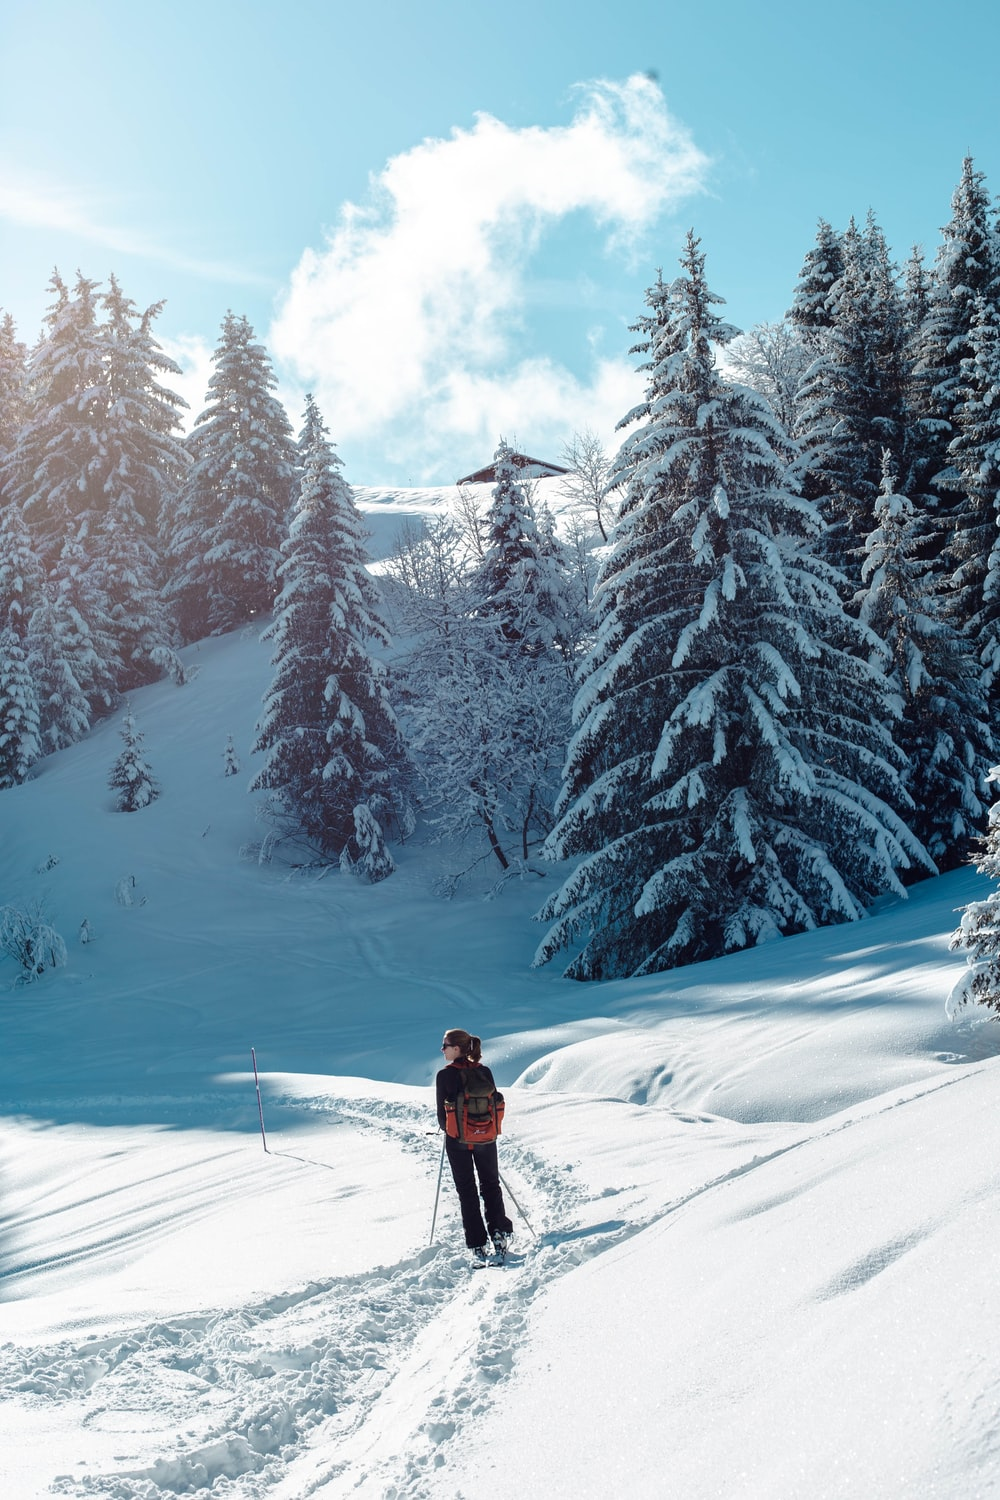 person in red jacket and black pants standing on snow covered ground near snow covered trees